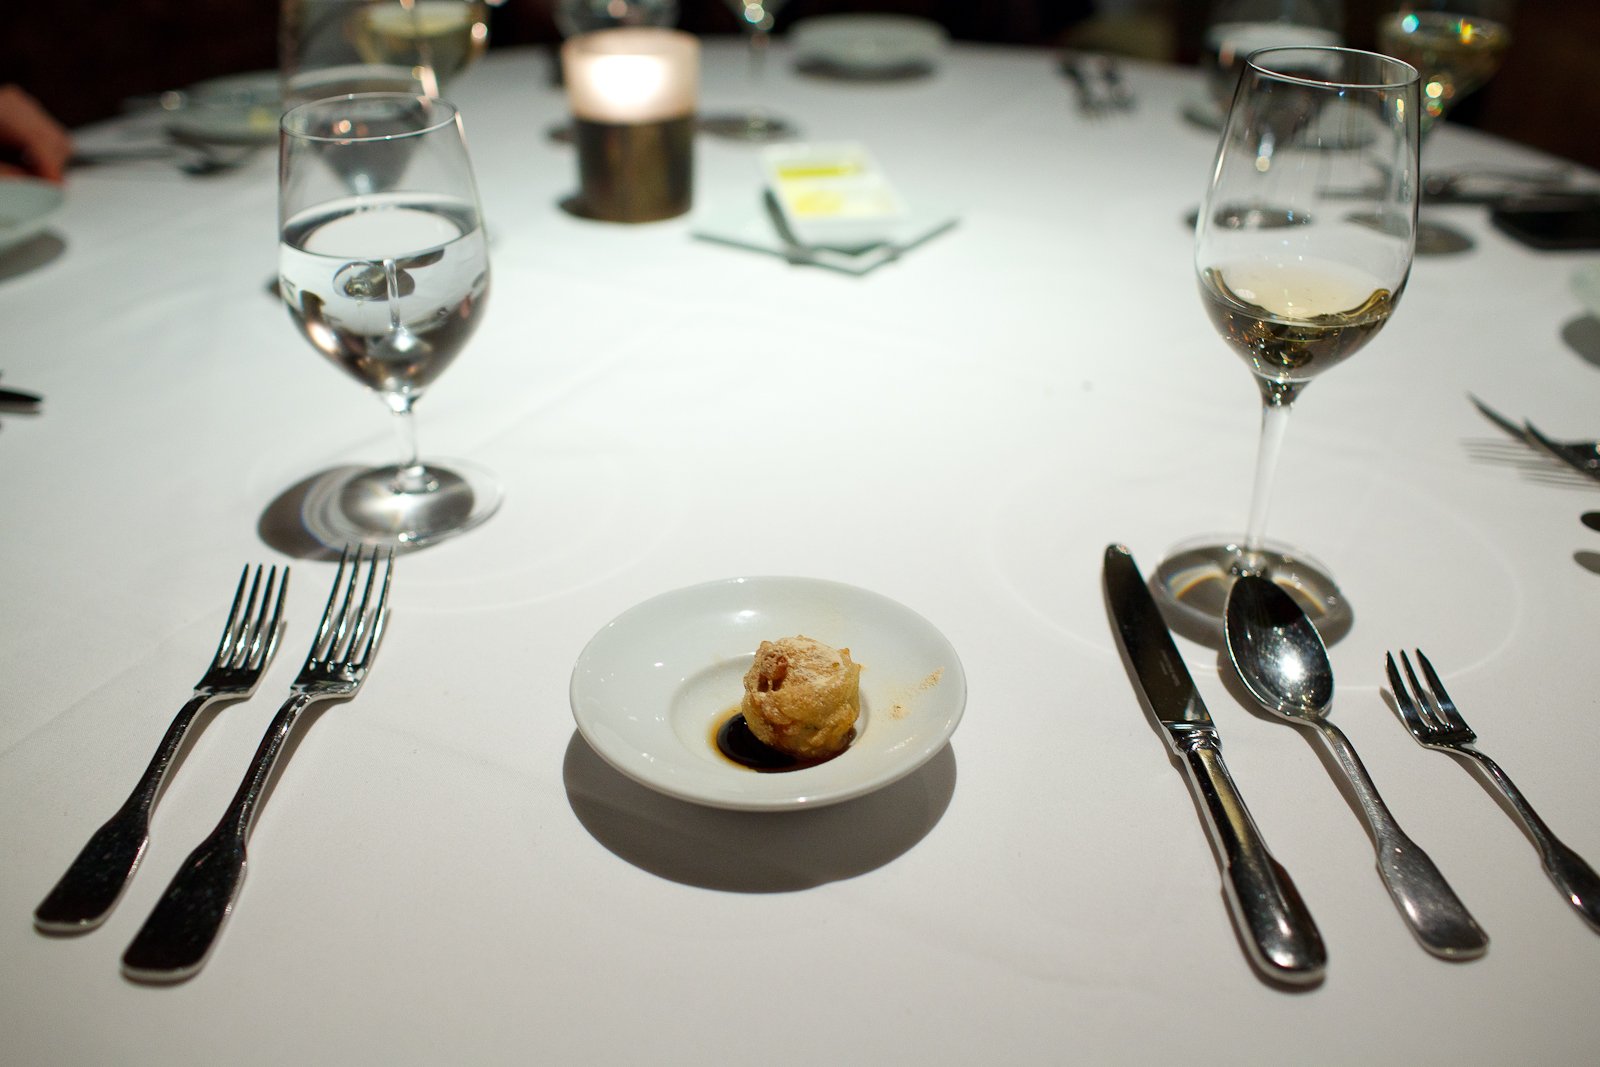 Amuse Bouche 2: Fish and Chips